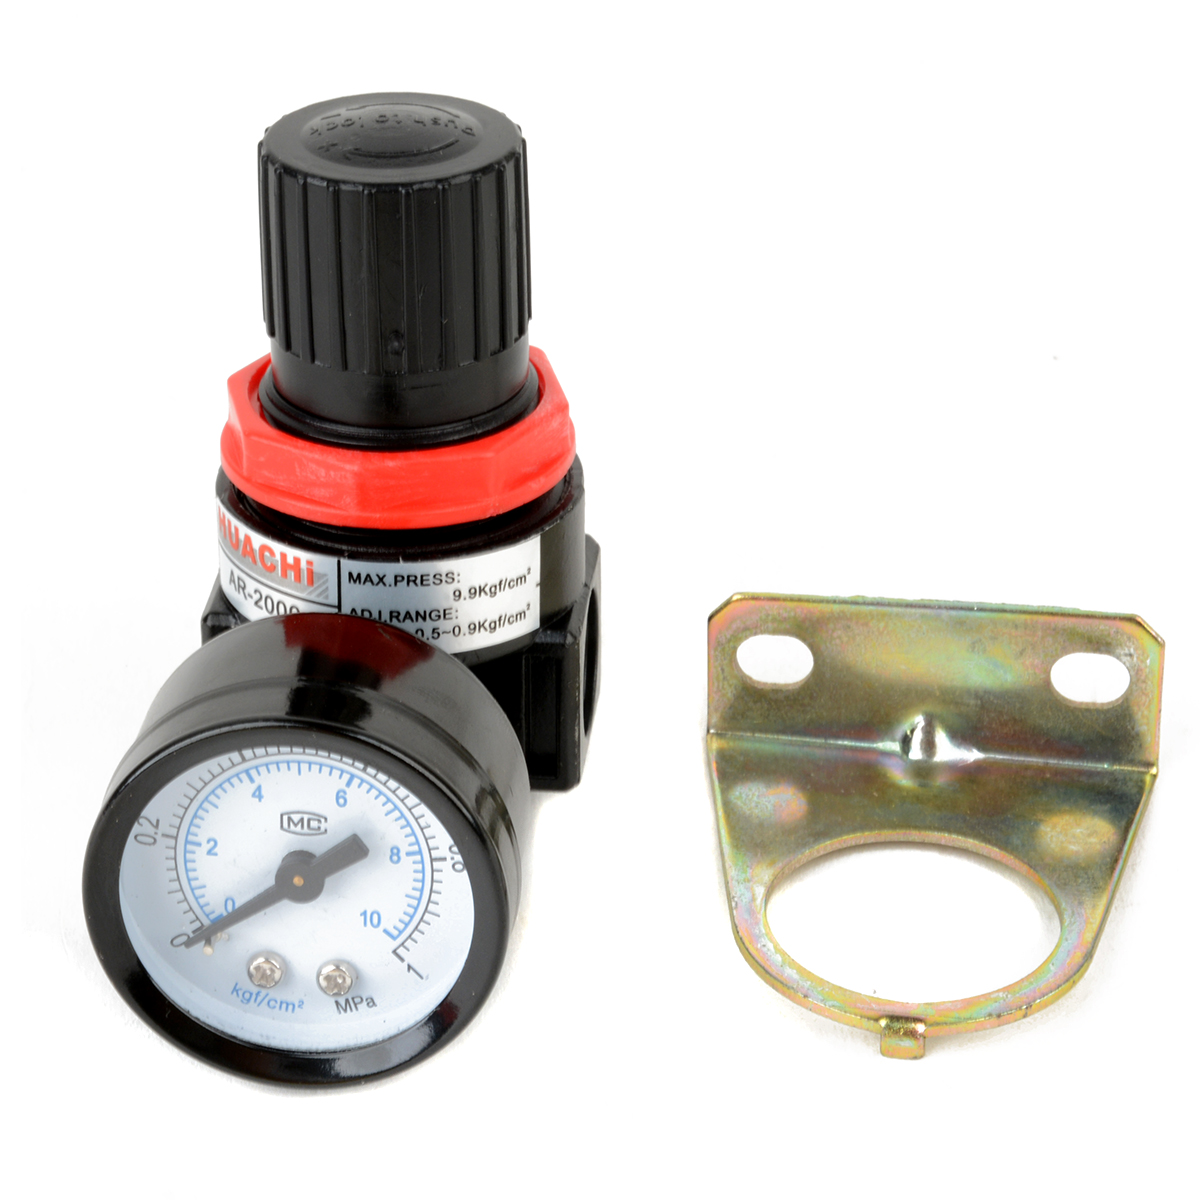 1pc Air Control Compressor Relief Regulator Pressure Regulating Valve AR2000 75x40x40mm 120psi air compressor pressure valve switch manifold relief regulator gauges